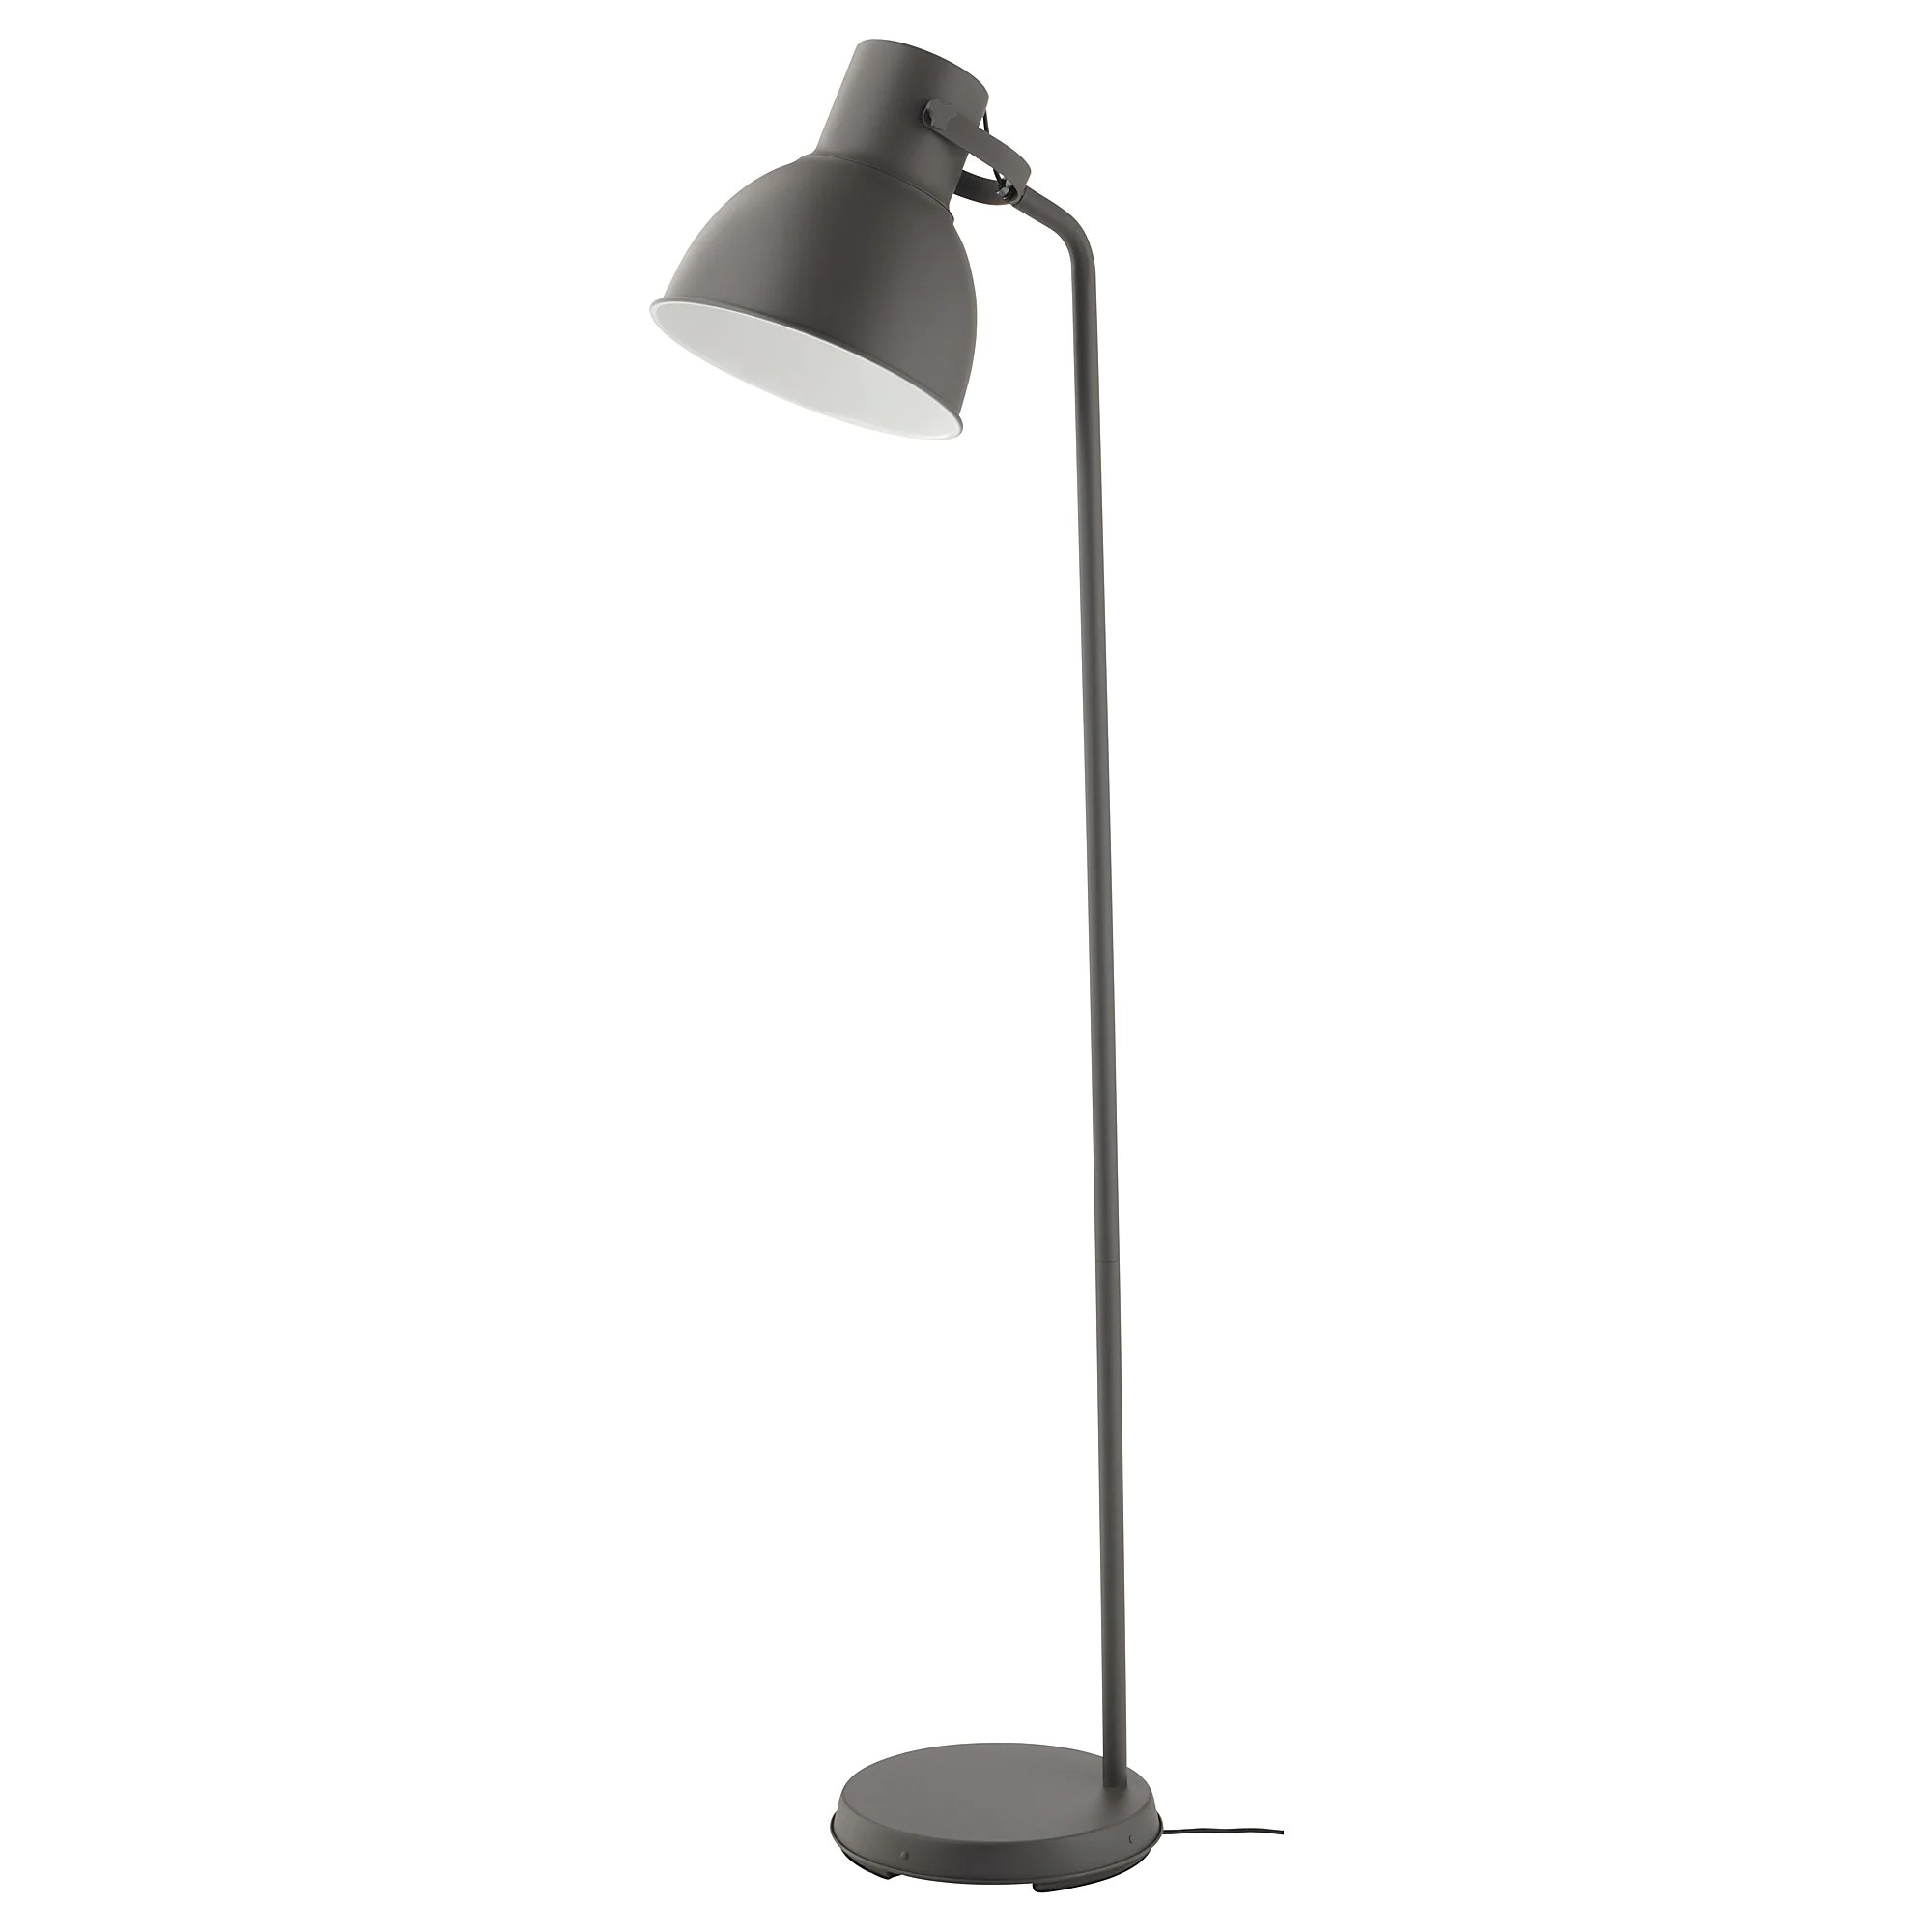 Hektar In M2 Hektar Floor Lamp Dark Gray